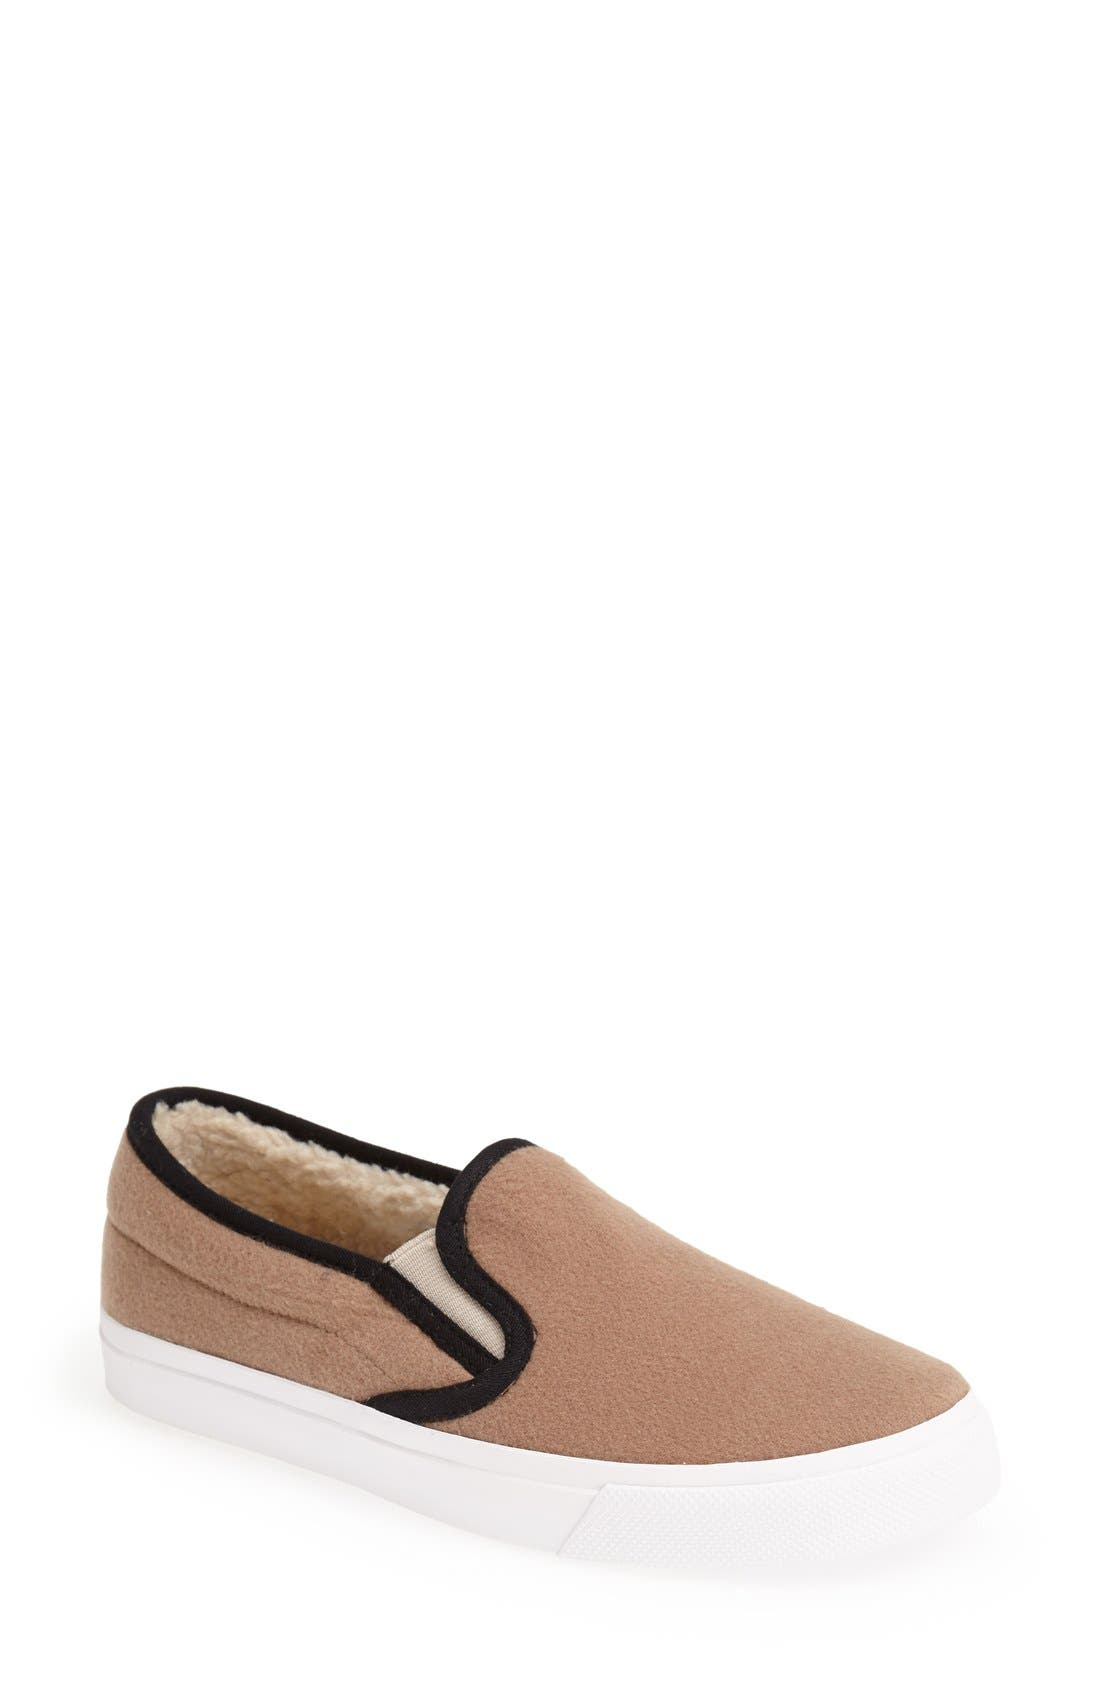 Main Image - Jeffrey Campbell 'Ray' Sneaker (Women)